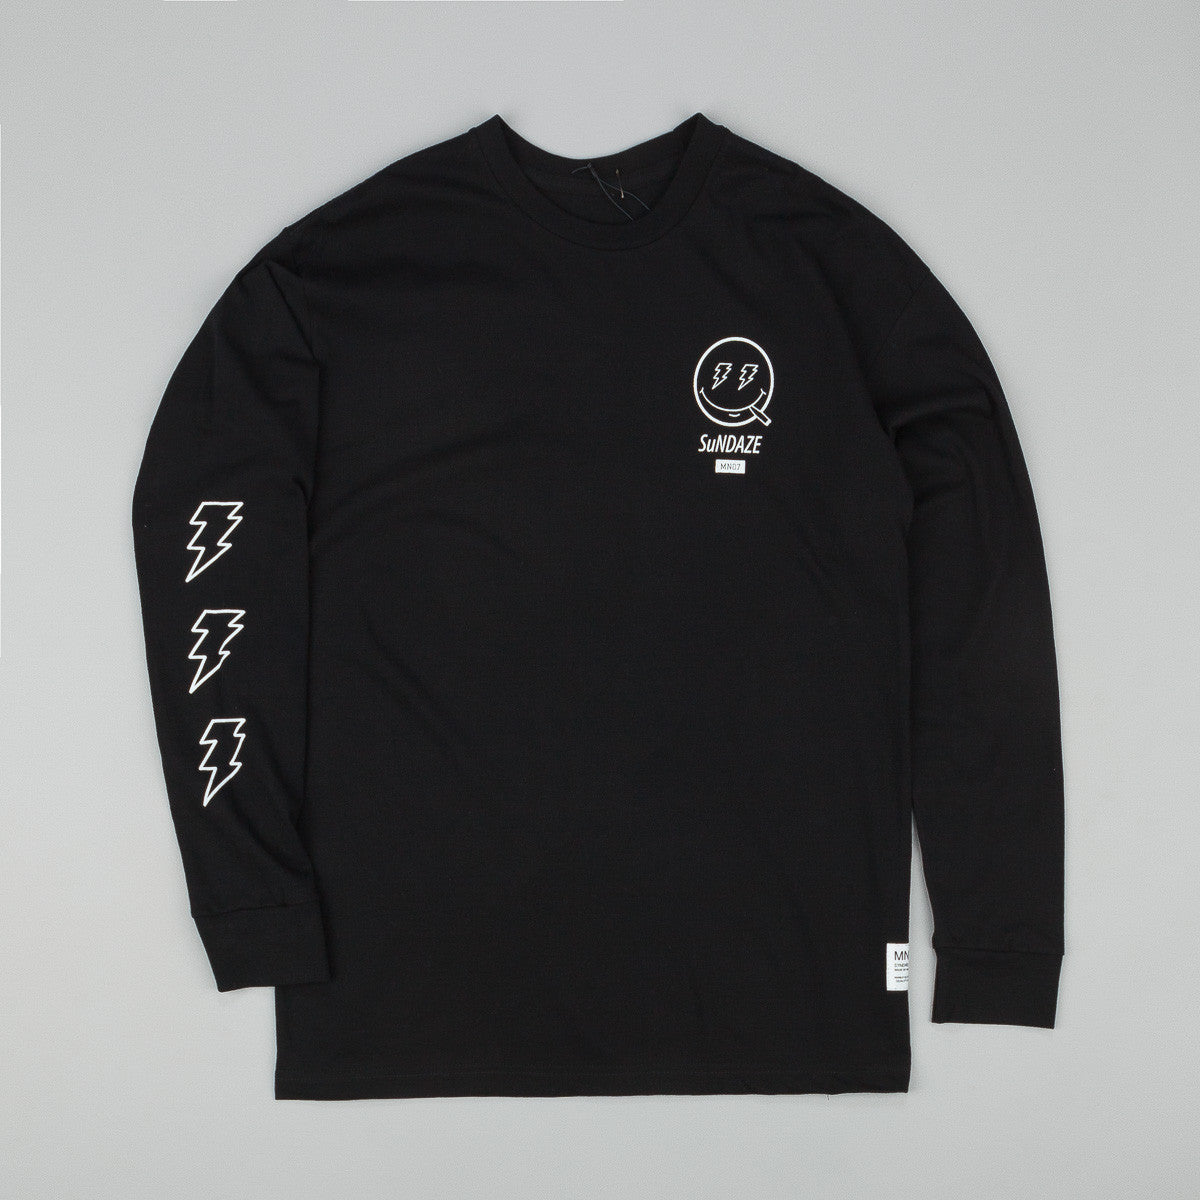 MN07 Sundaze Long Sleeve T-Shirt - Black